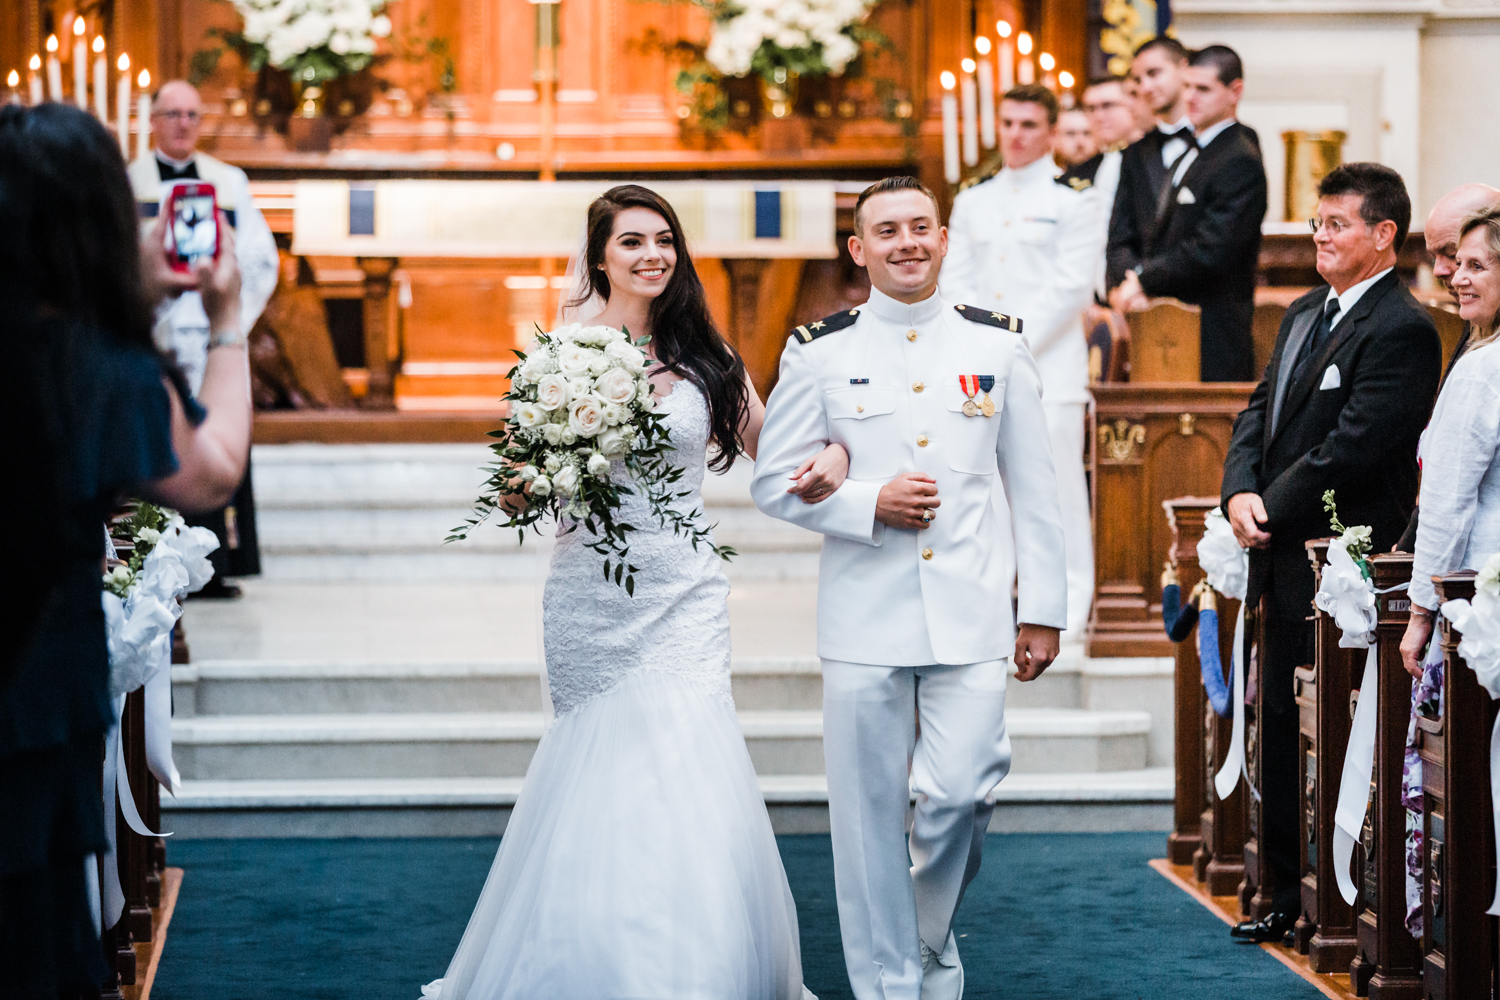 bride and groom happily walk down the aisle together after they say I Do